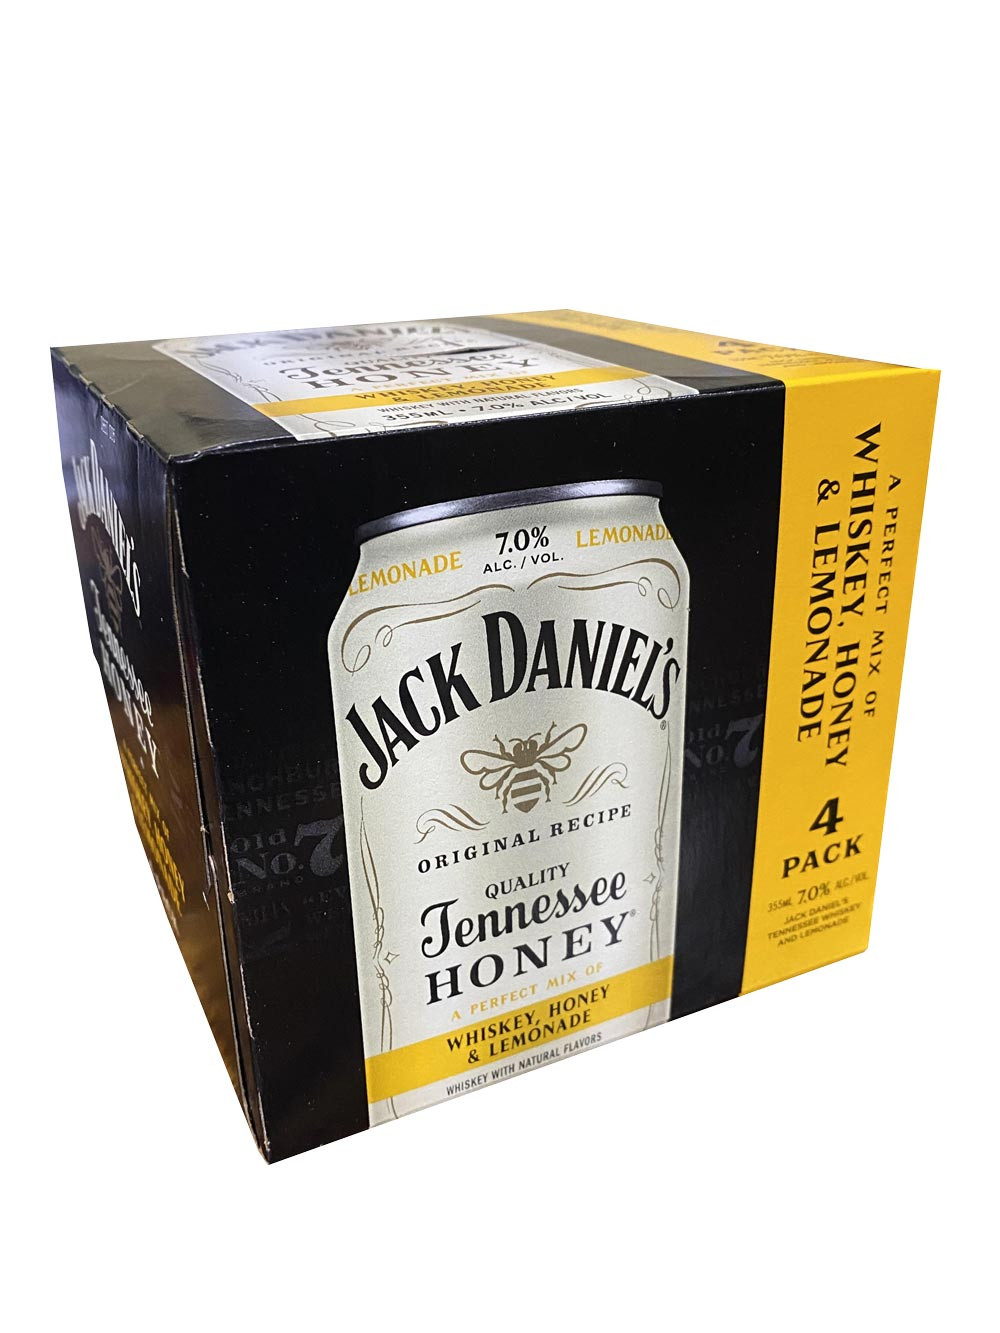 Jack Daniels 4Pk Whiskey, Honey & Lemonade 12oz. Cans